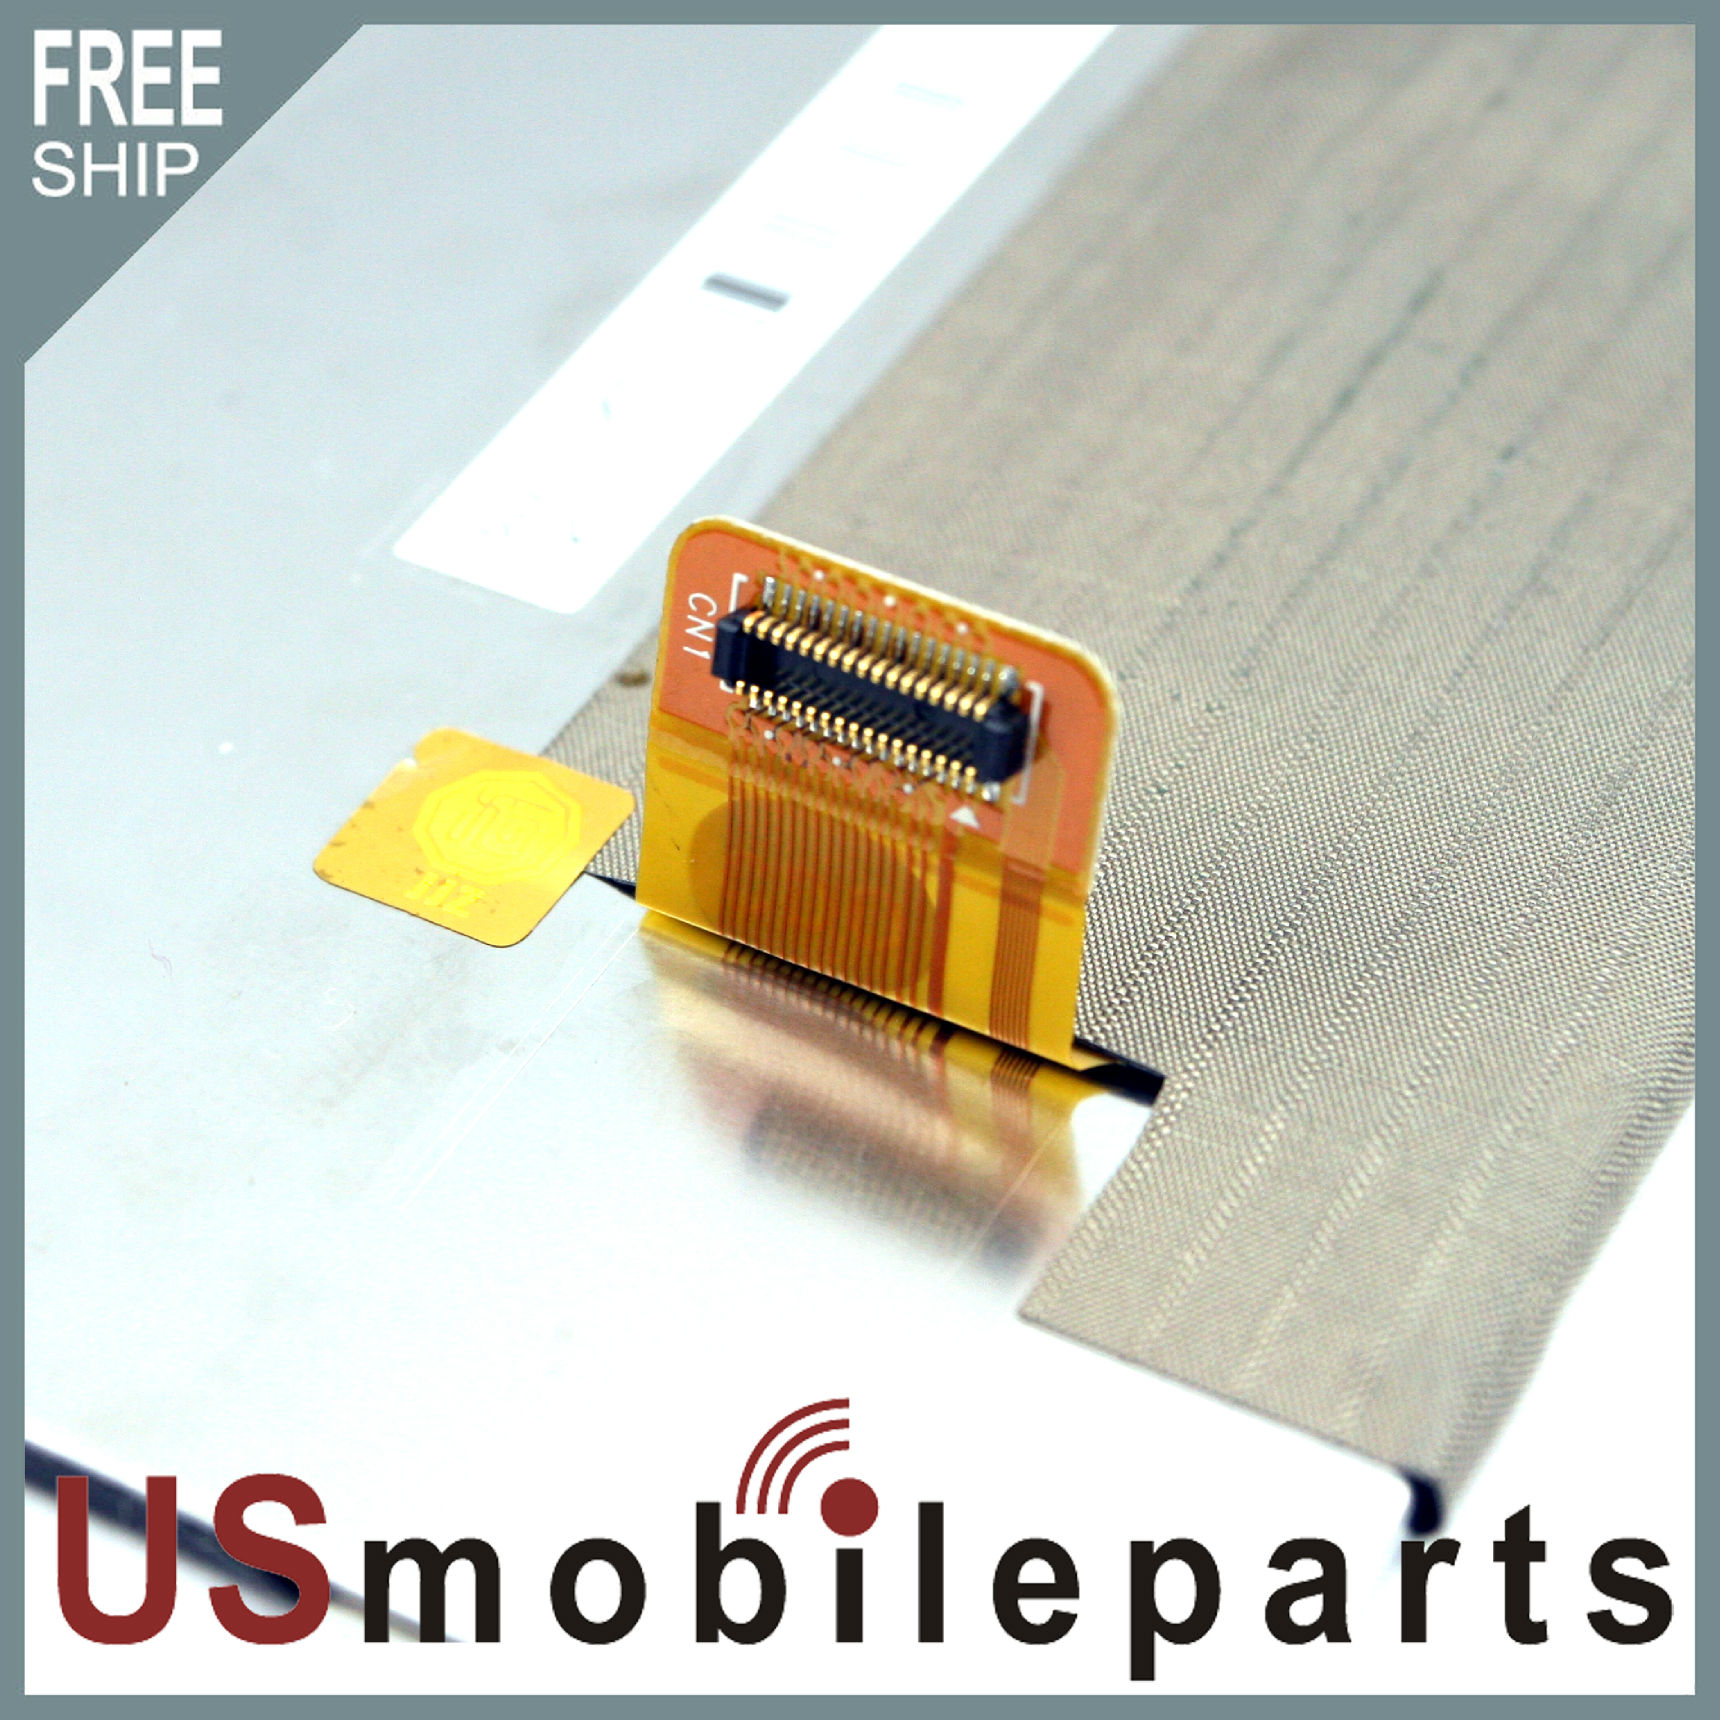 New Kindle Fire LCD Display Screen Replacement Parts Repair Fix on